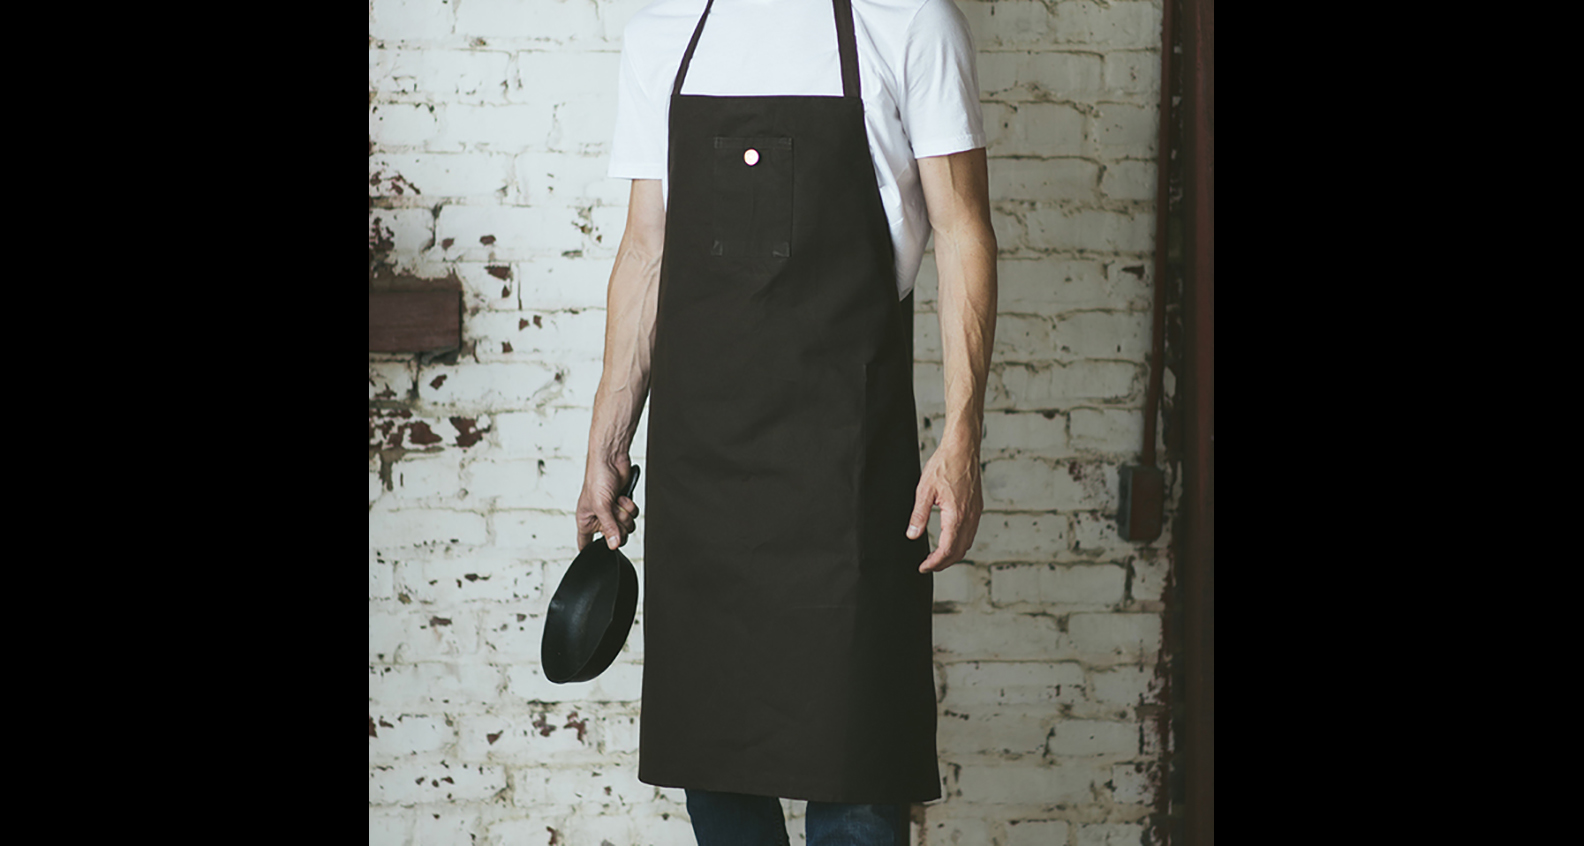 Heirloomed Waxed Canvas Men's Grilling Apron